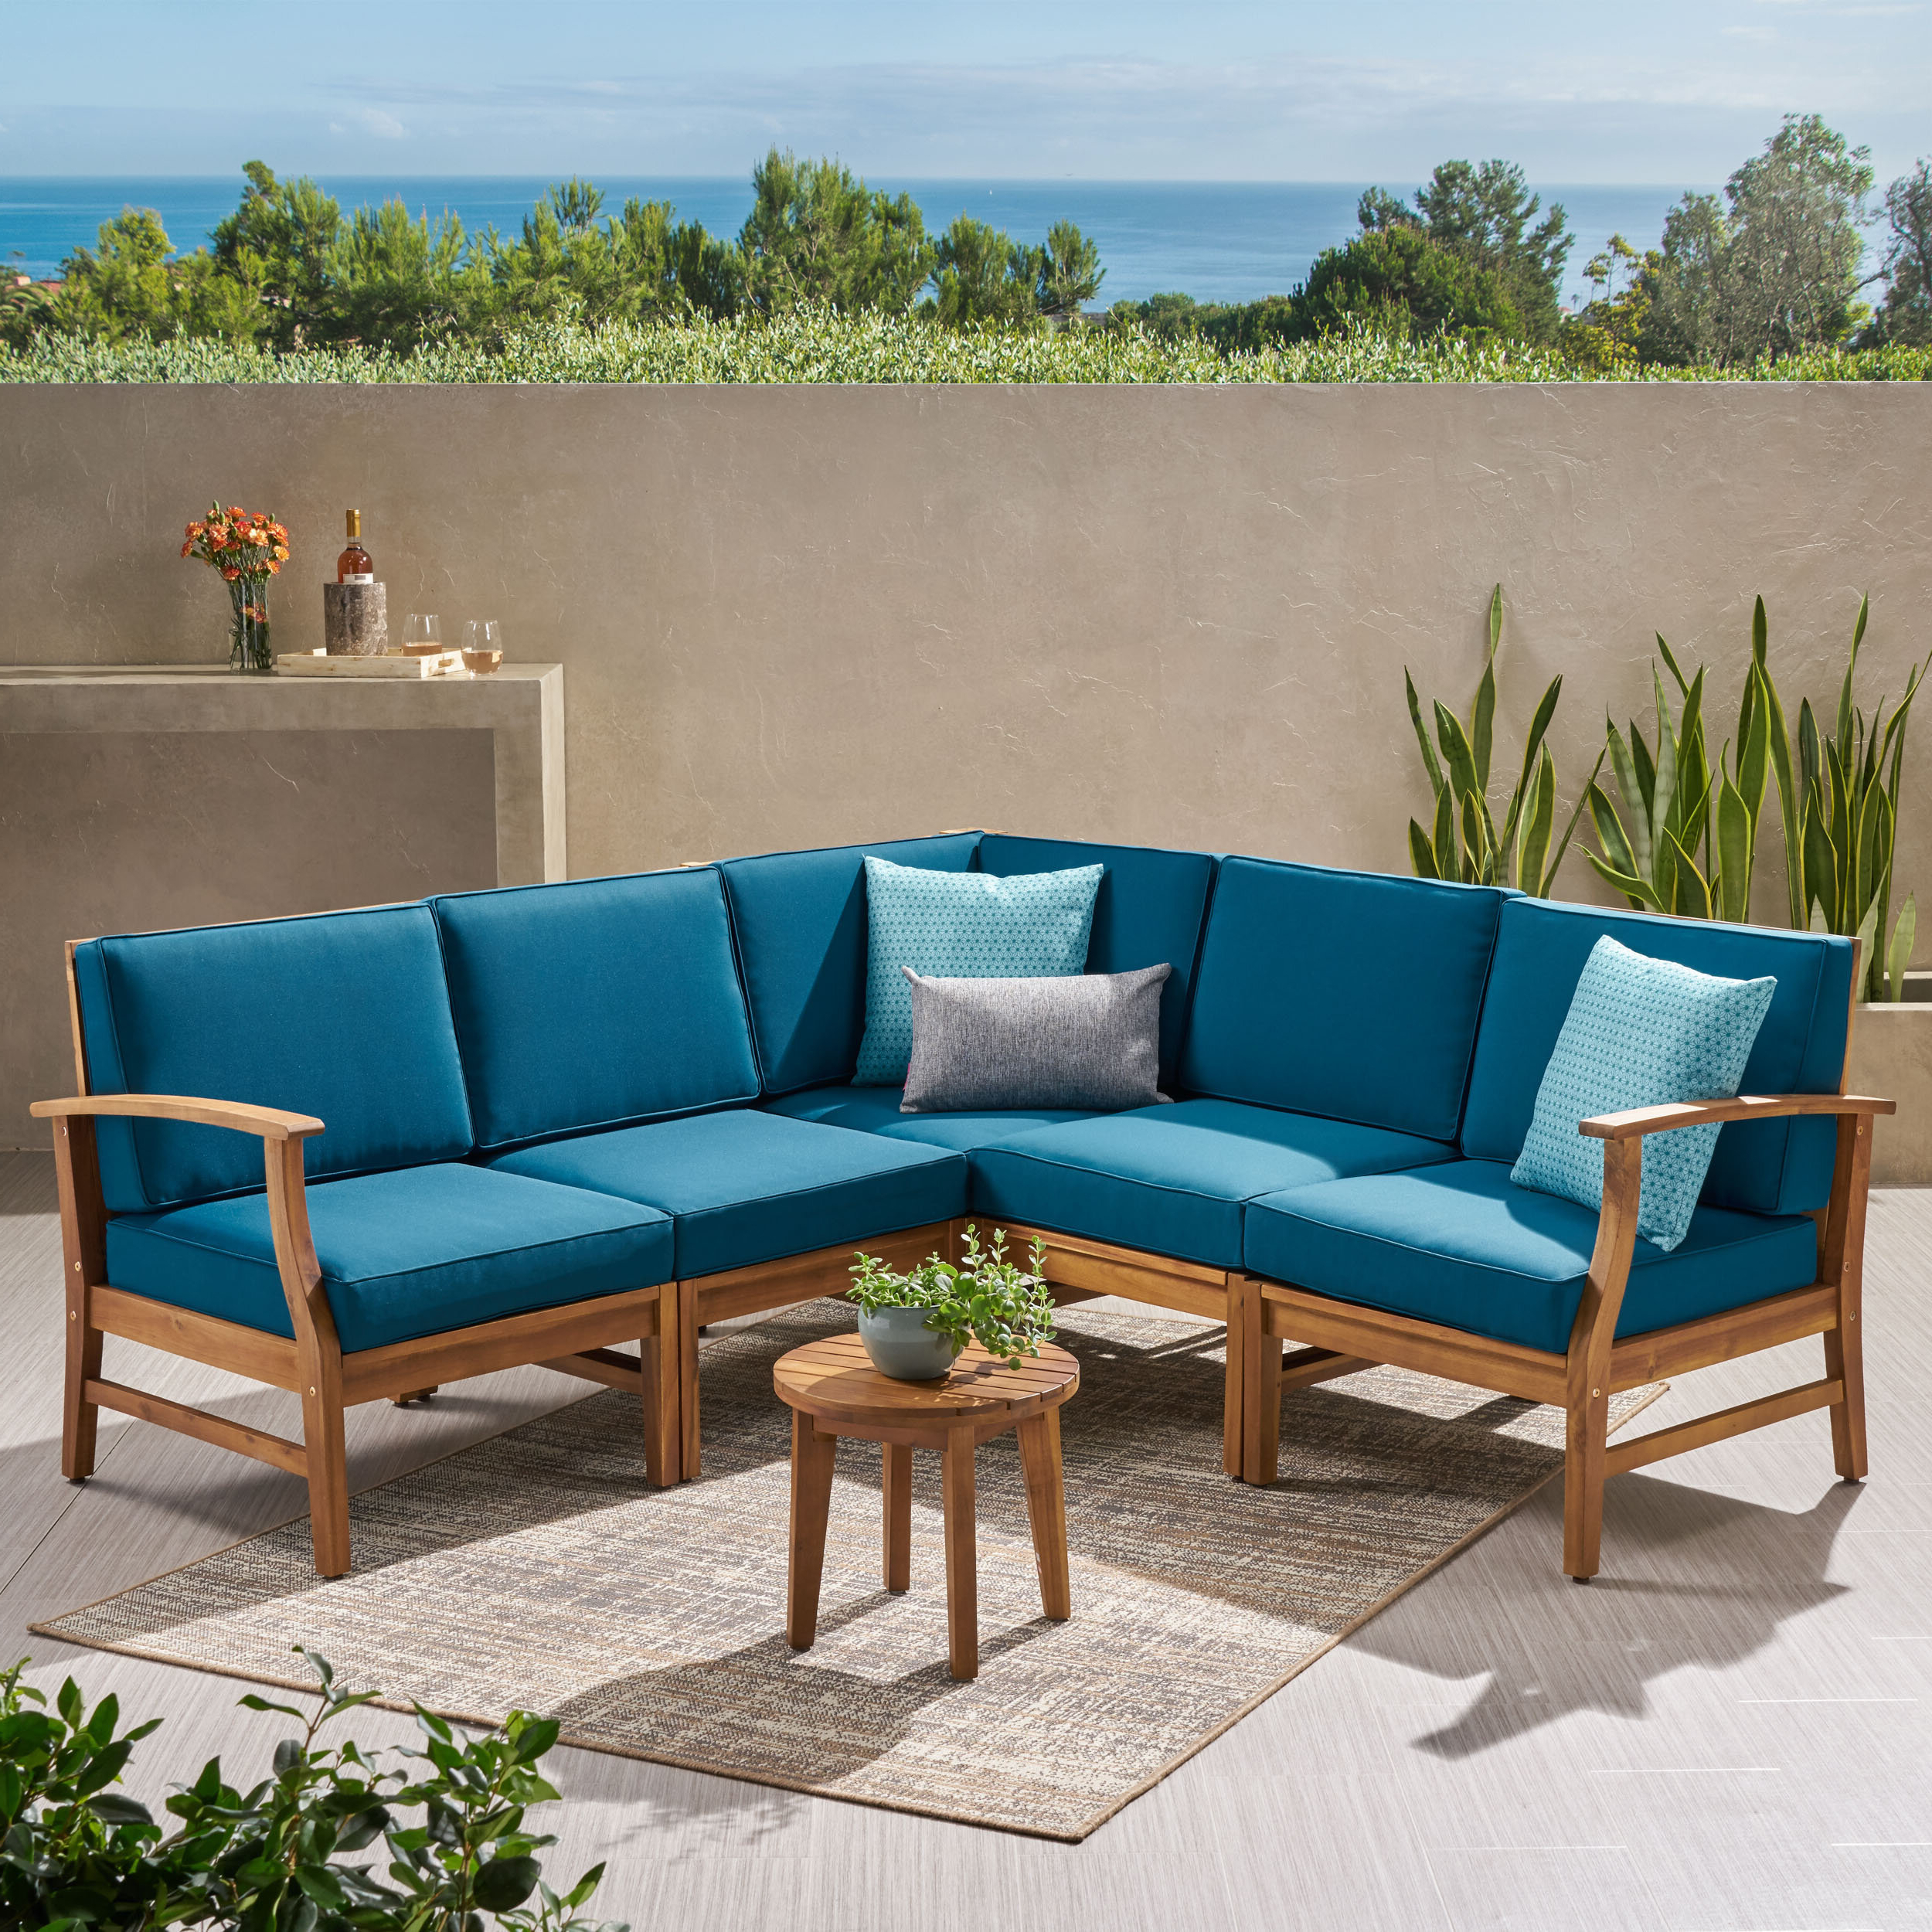 Well Liked Antonia Teak Patio Sectional With Cushions With Regard To Antonia Teak Patio Sectionals With Cushions (View 2 of 25)